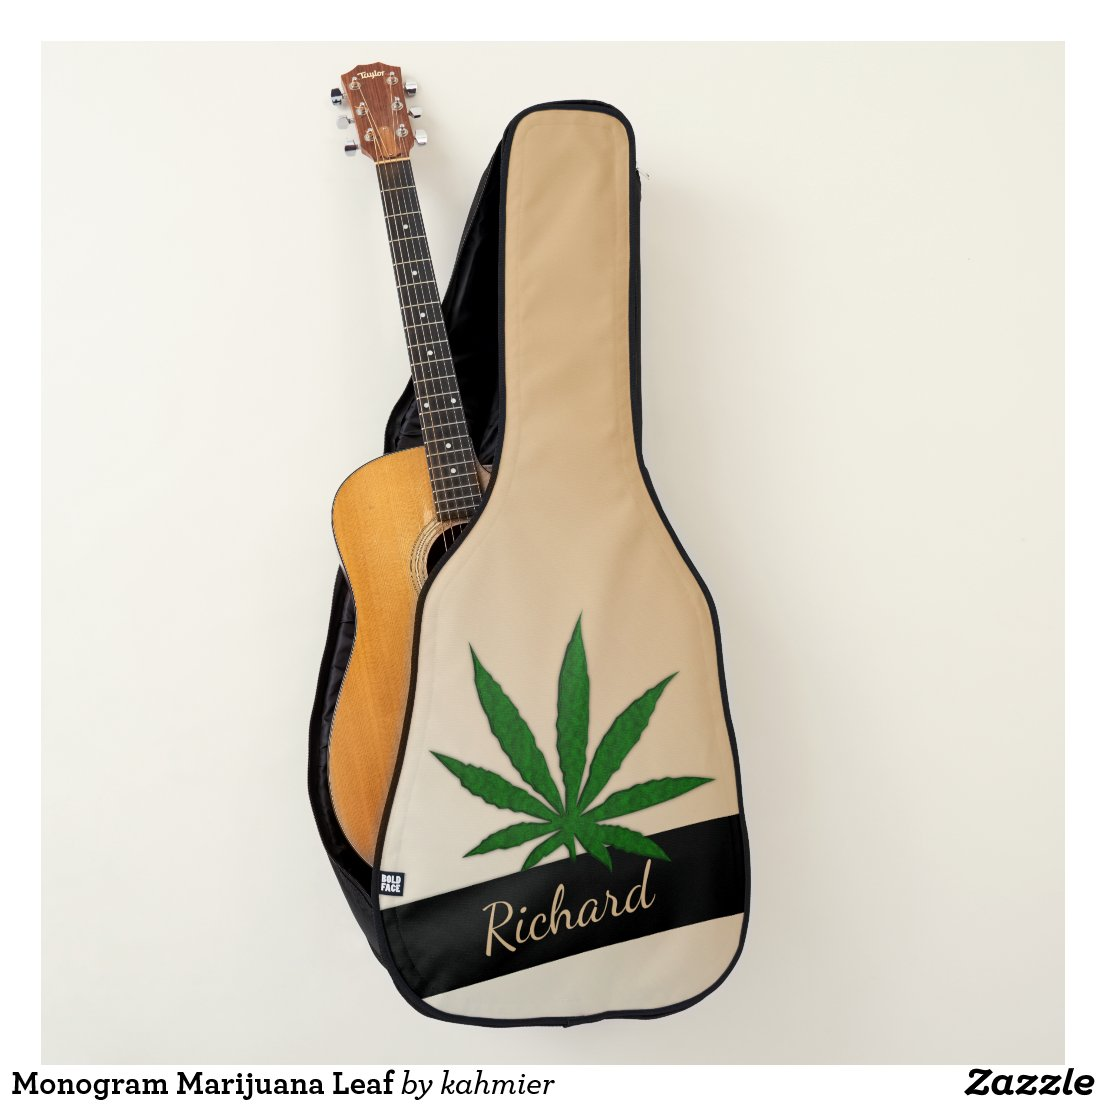 Monogram Marijuana Leaf Guitar Case